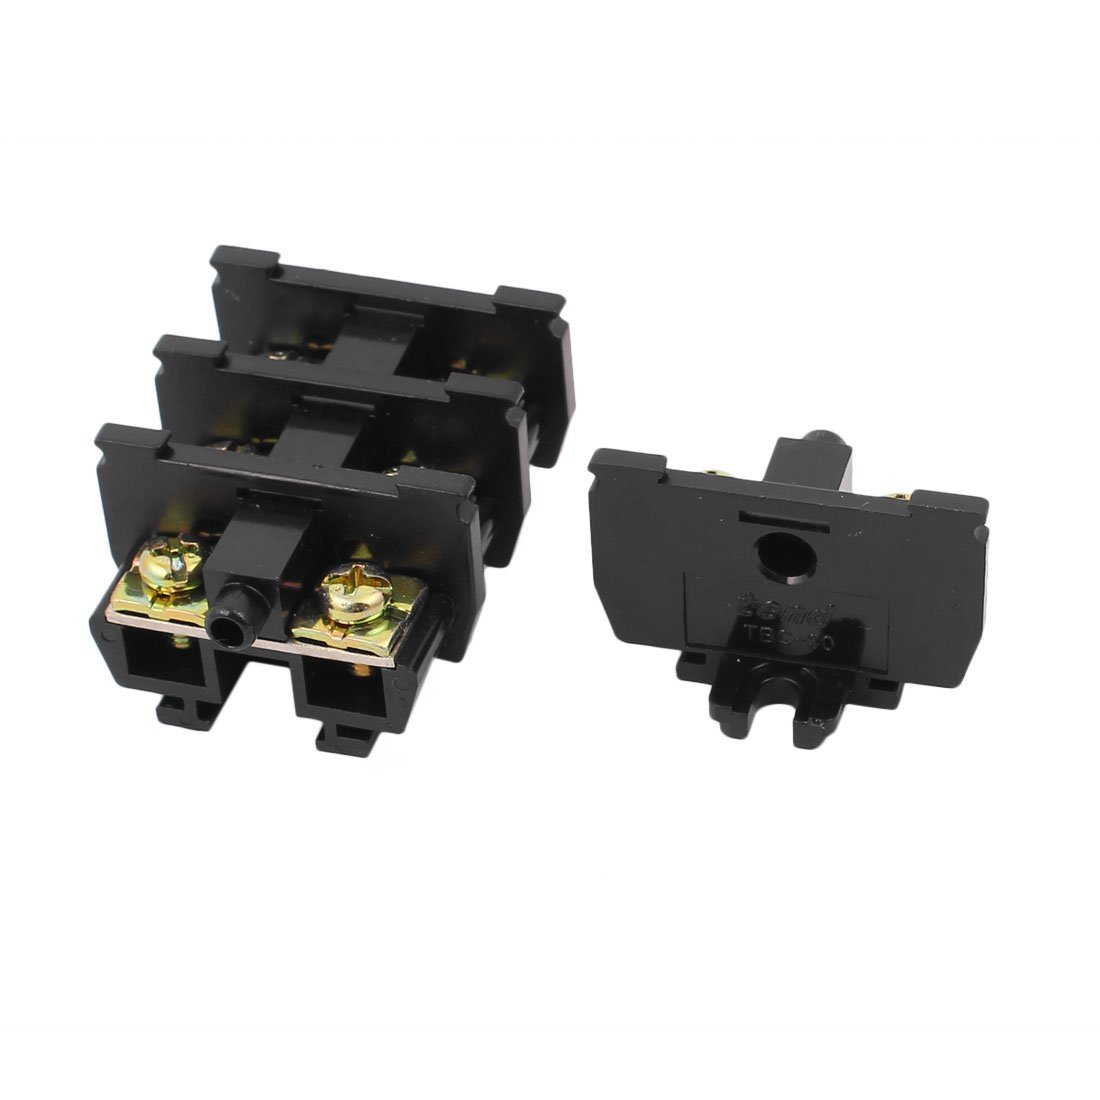 uxcell 4 Pcs TBC-30A 600V 30A Universal Terminal Block for Cable Connecting